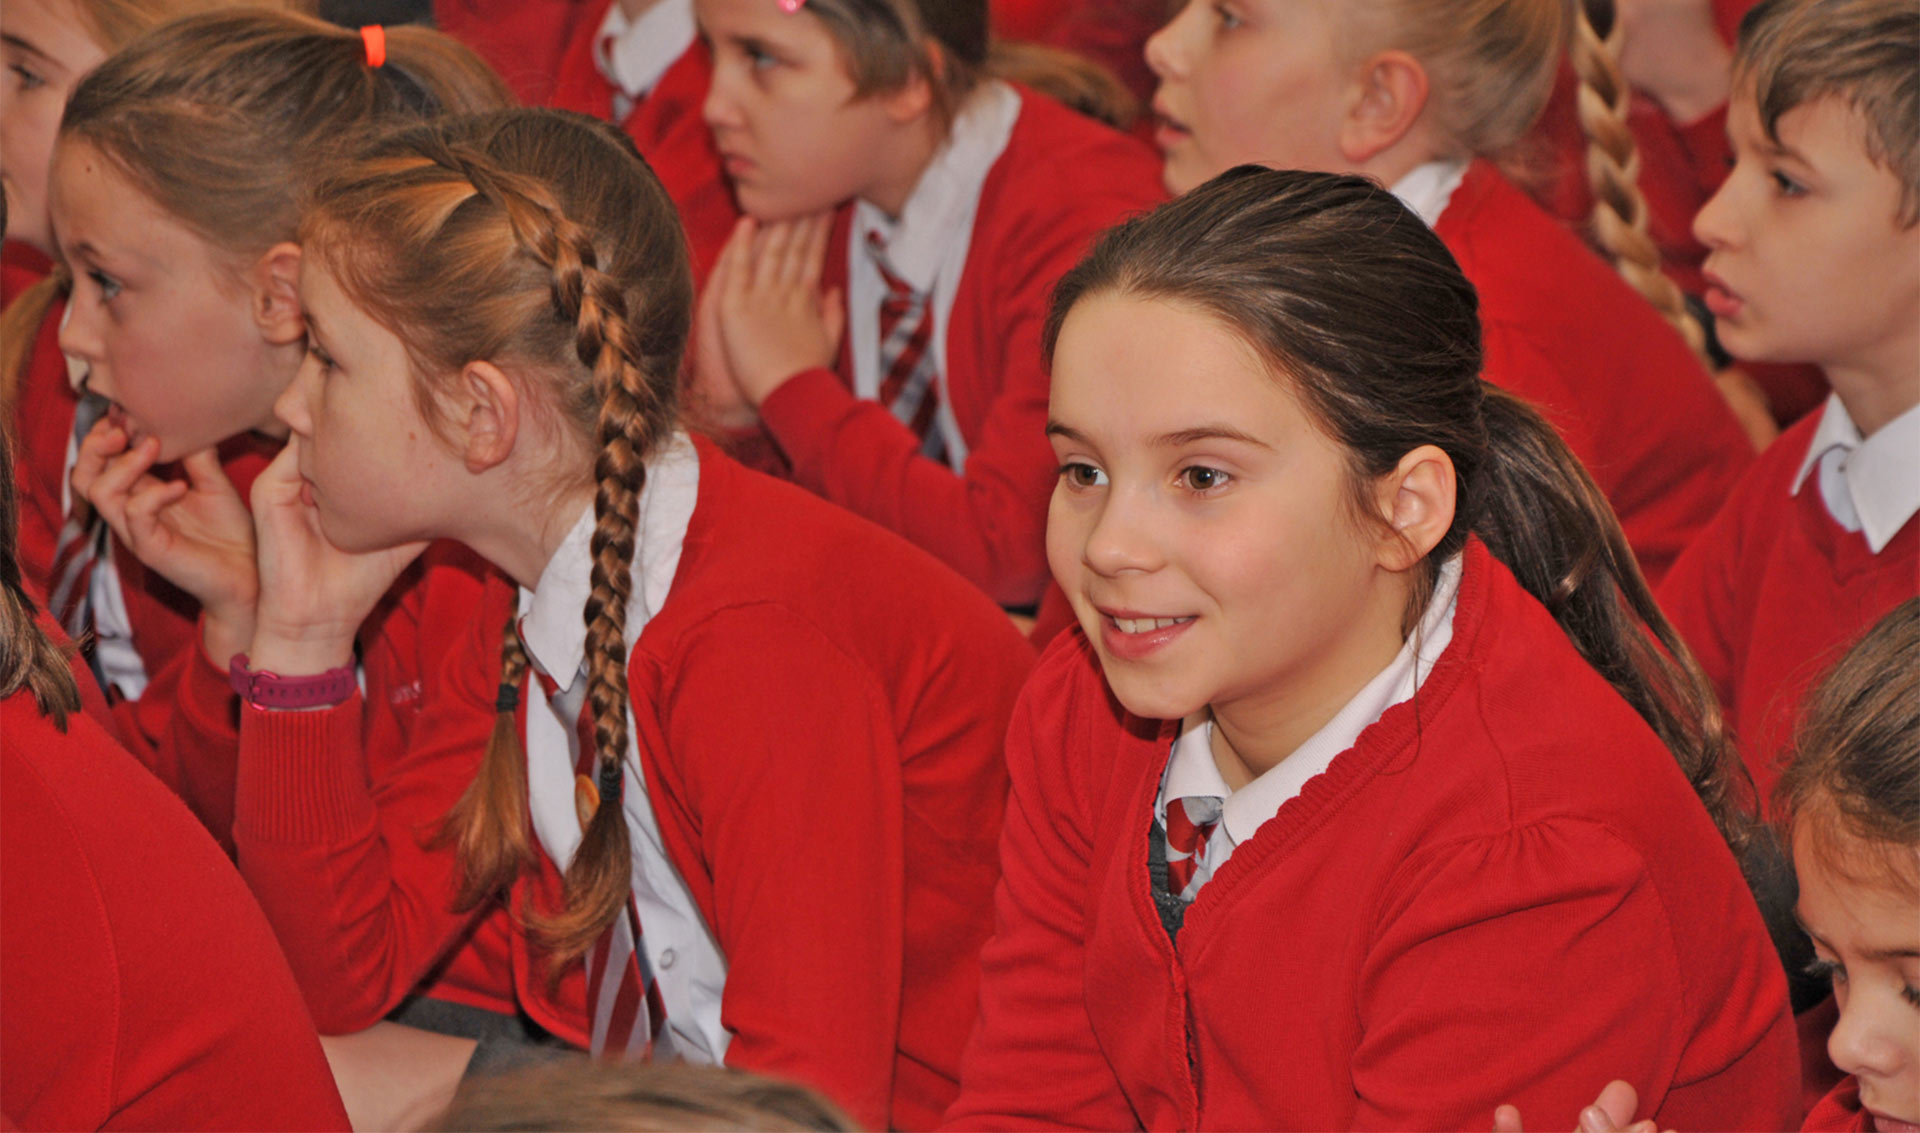 Life at St. Luke's Primary School Cannock